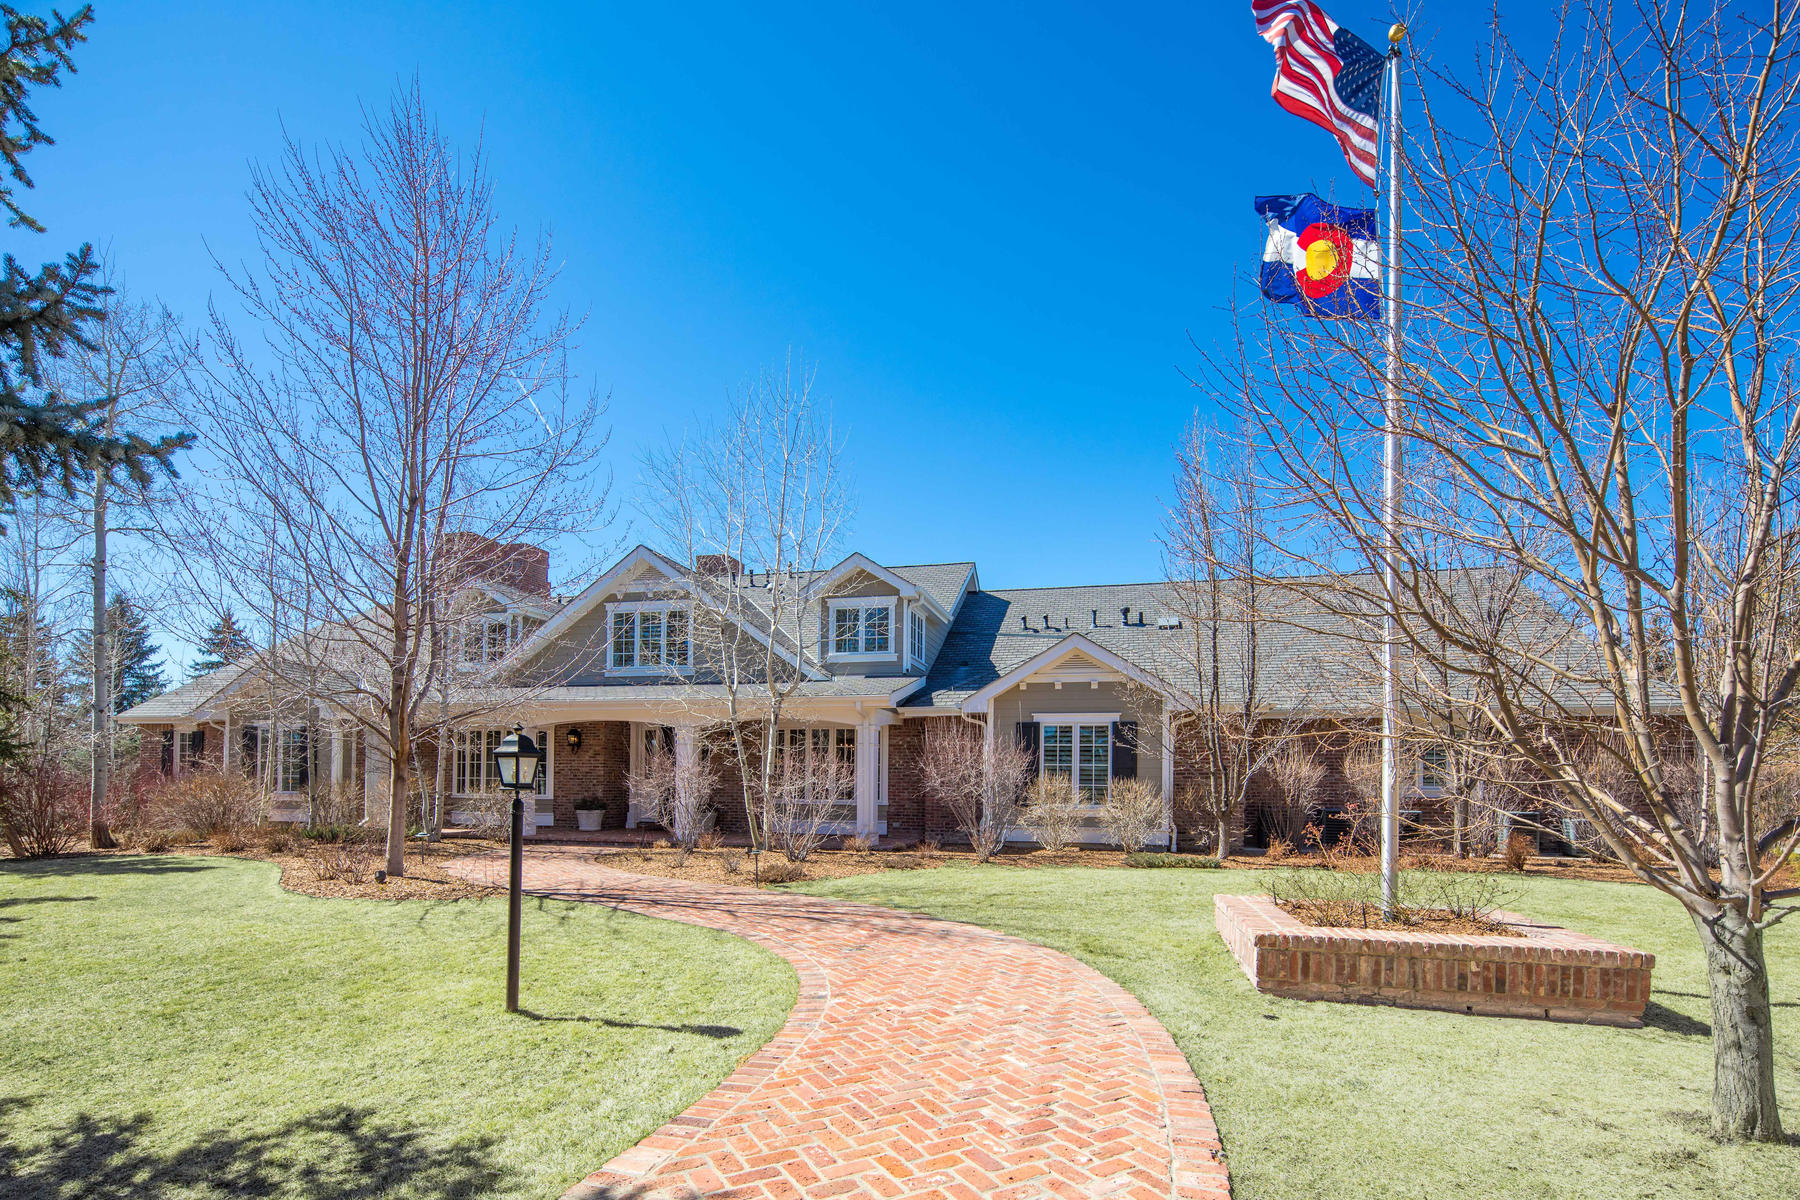 Single Family Home for Active at Spectacular Hampton-style estate set on four private acres. 5080 E Quincy Ave Cherry Hills Village, Colorado 80113 United States